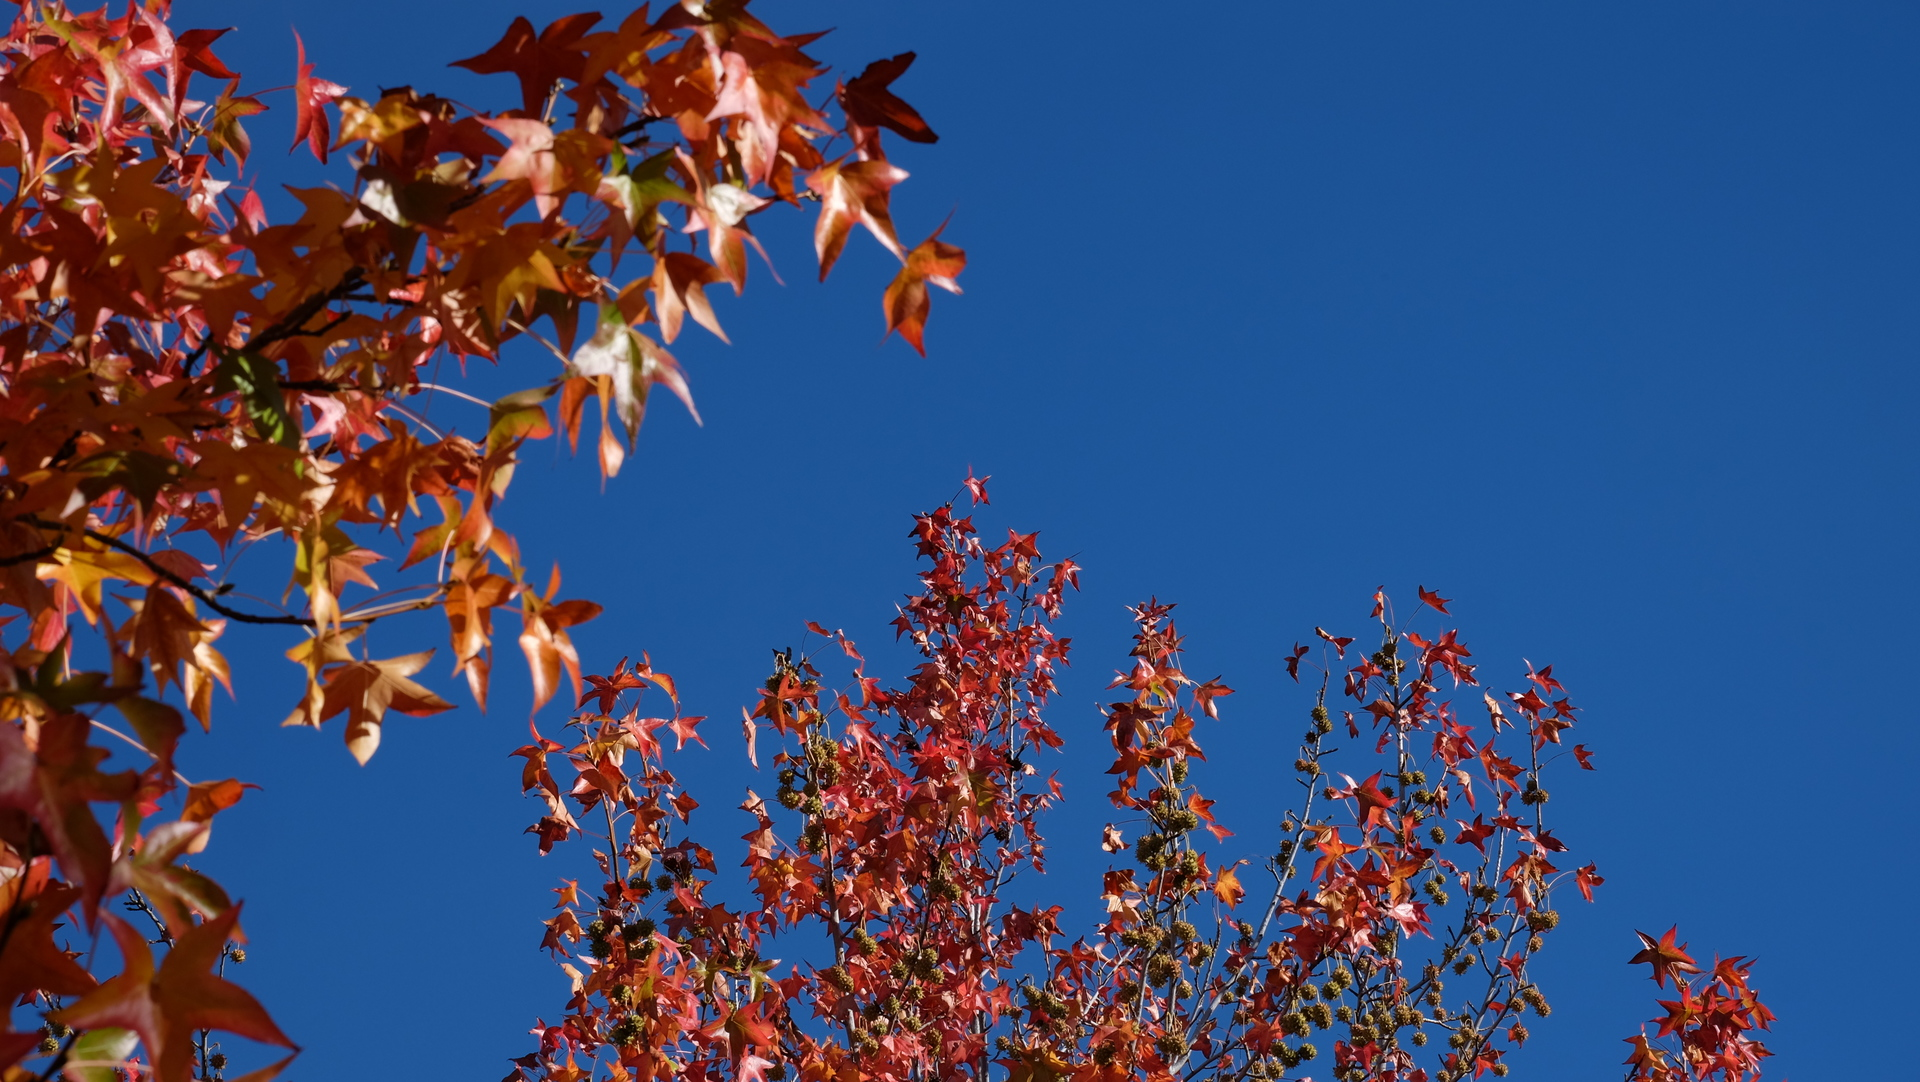 Leaves turning red during fall